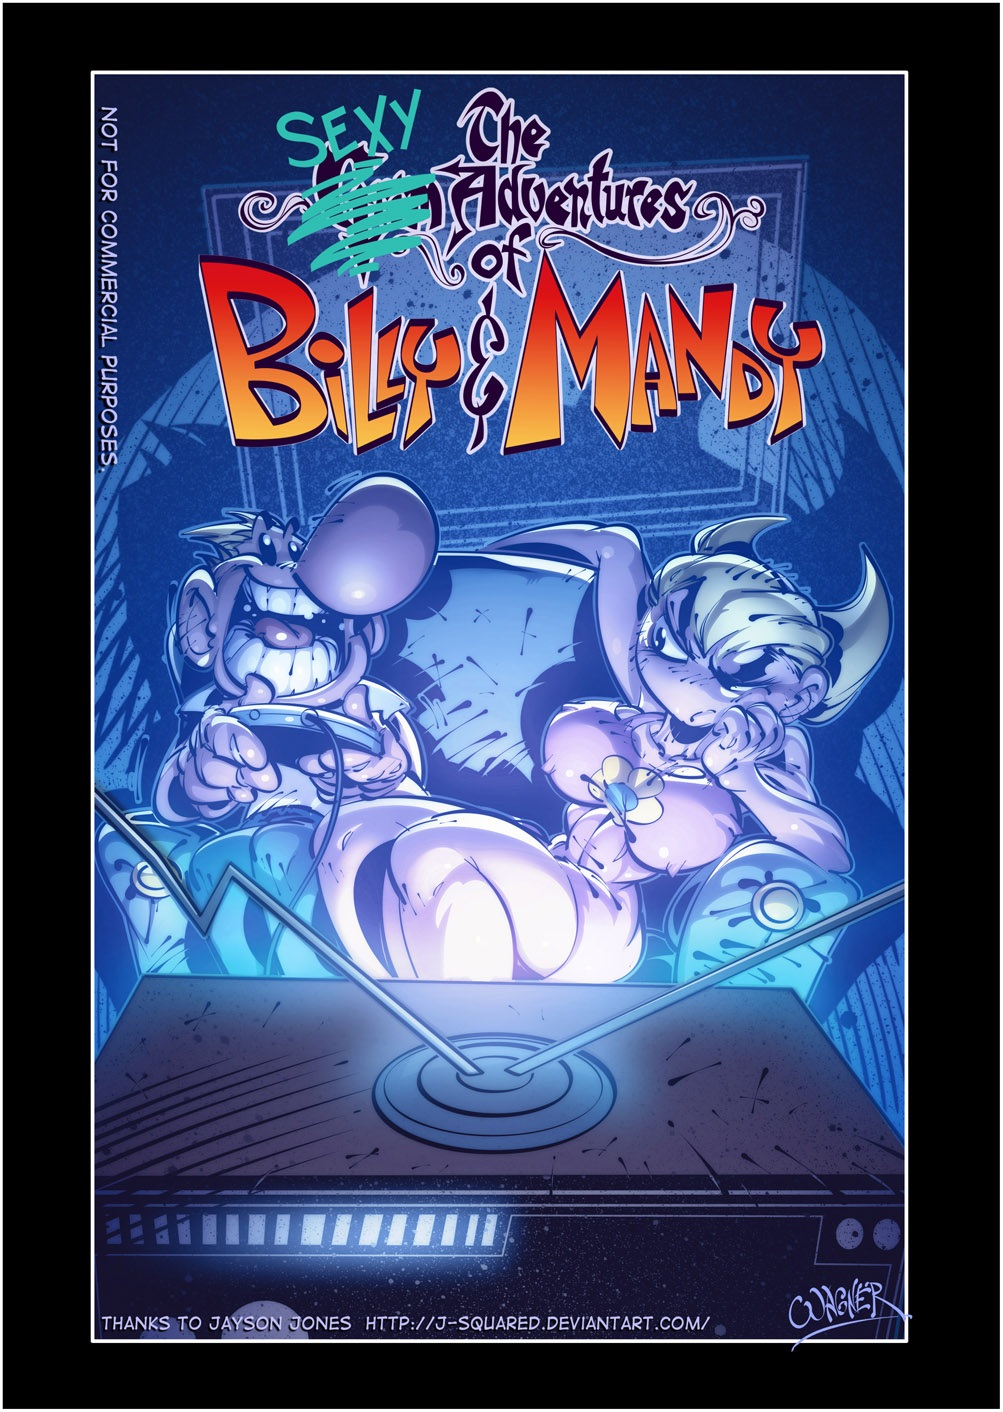 The Sexy Adventures of Billy Mandy